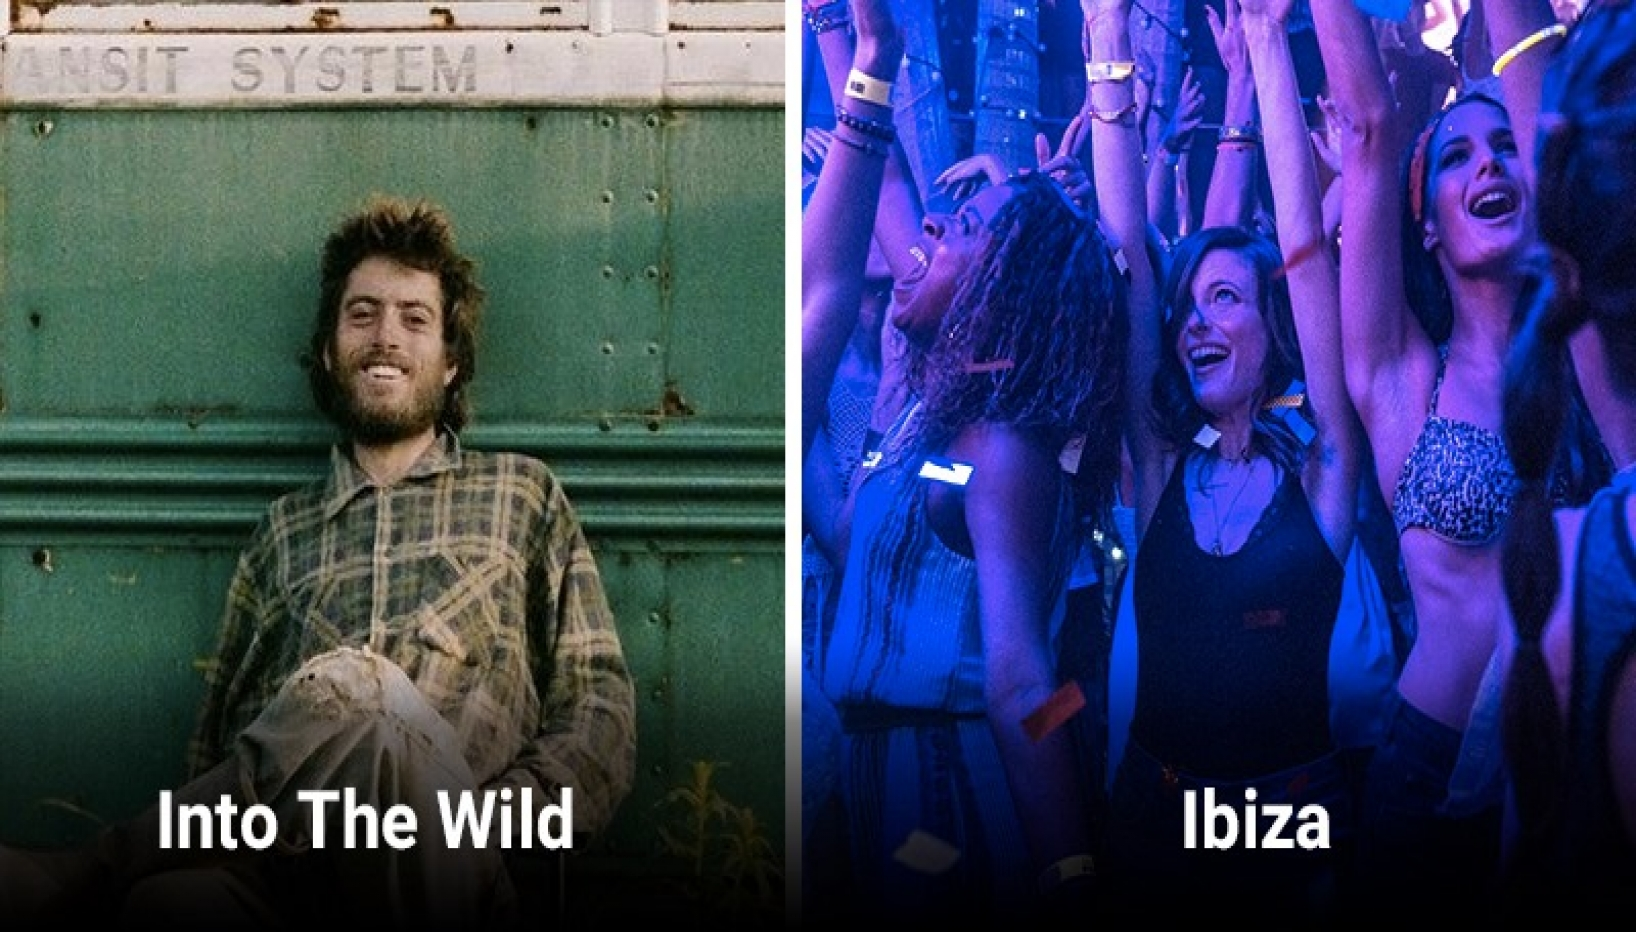 Posters for Into the Wild and Ibiza